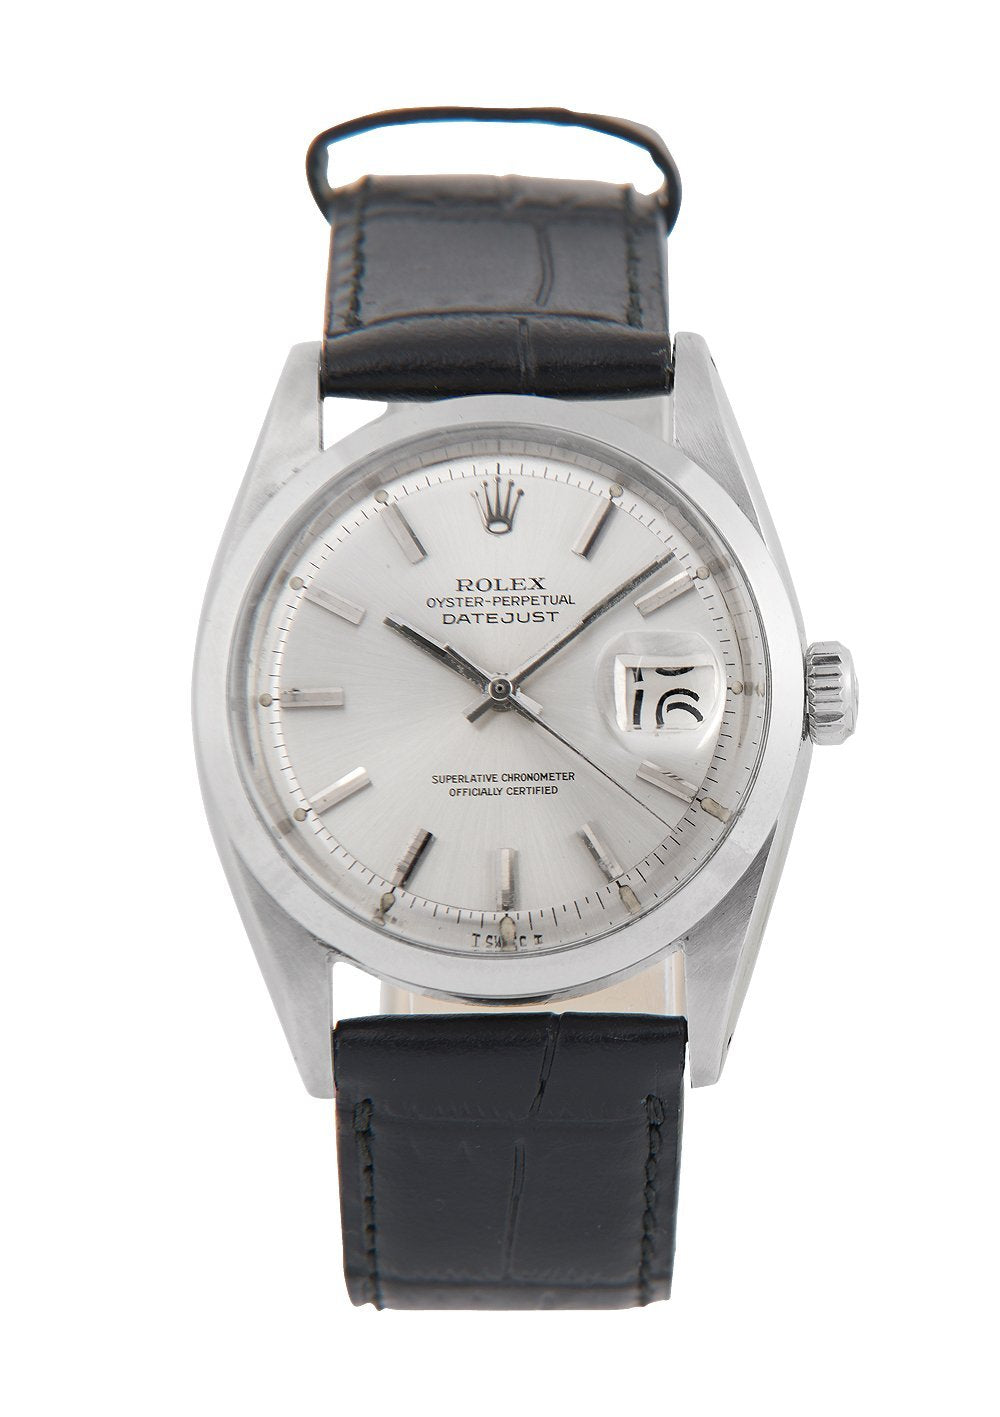 Rolex Datejust Steel Watch with Silver Dial Ref: 1600